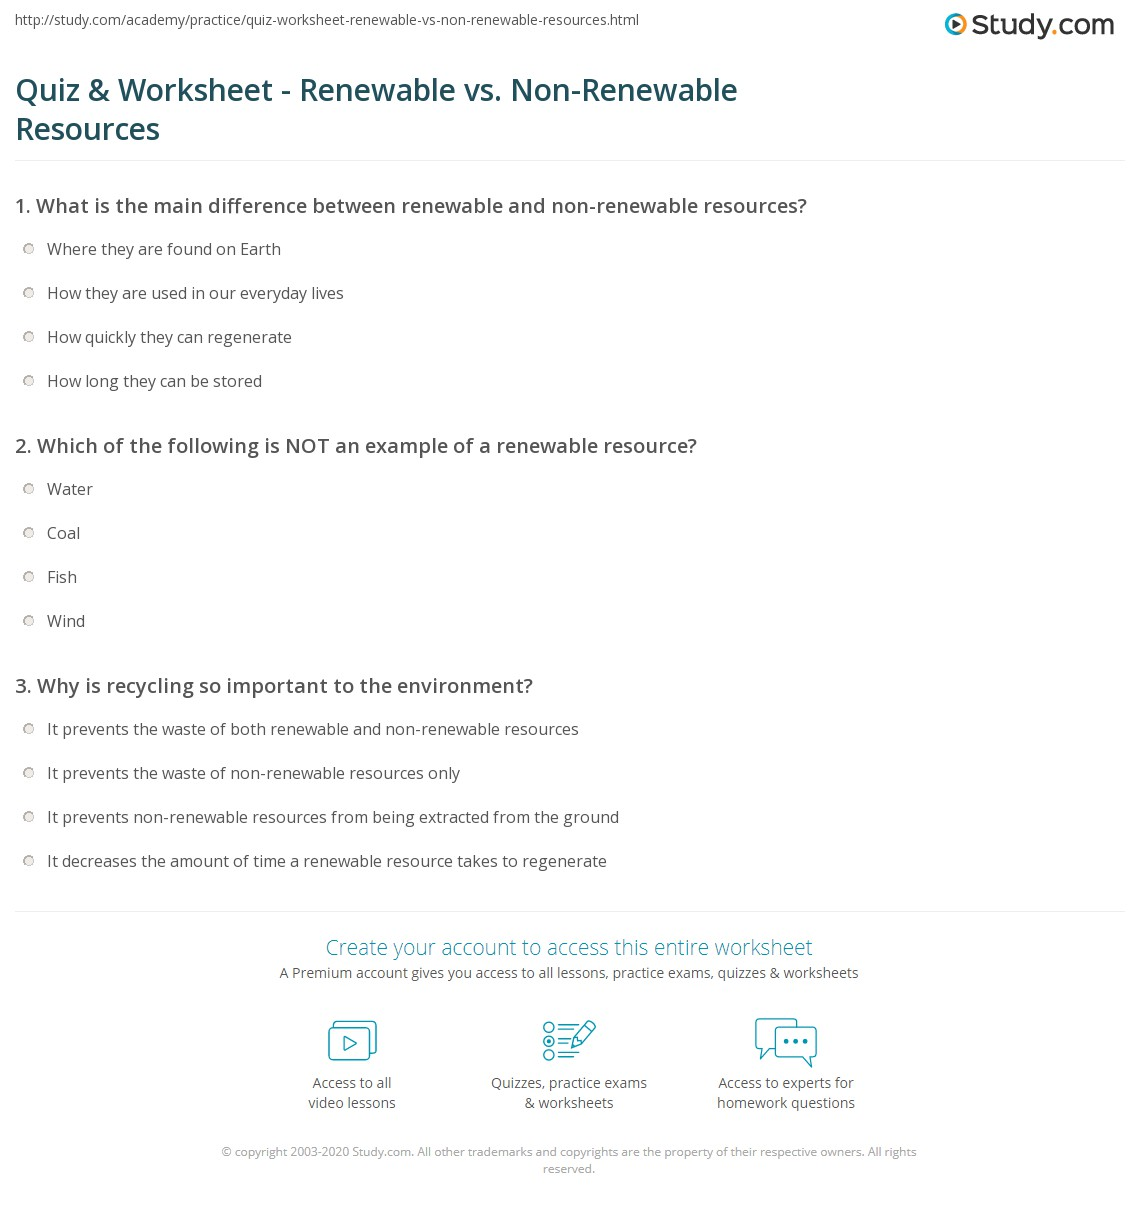 Worksheet Renewable And Nonrenewable Resources Worksheets quiz worksheet renewable vs non resources study com print definition differences worksheet